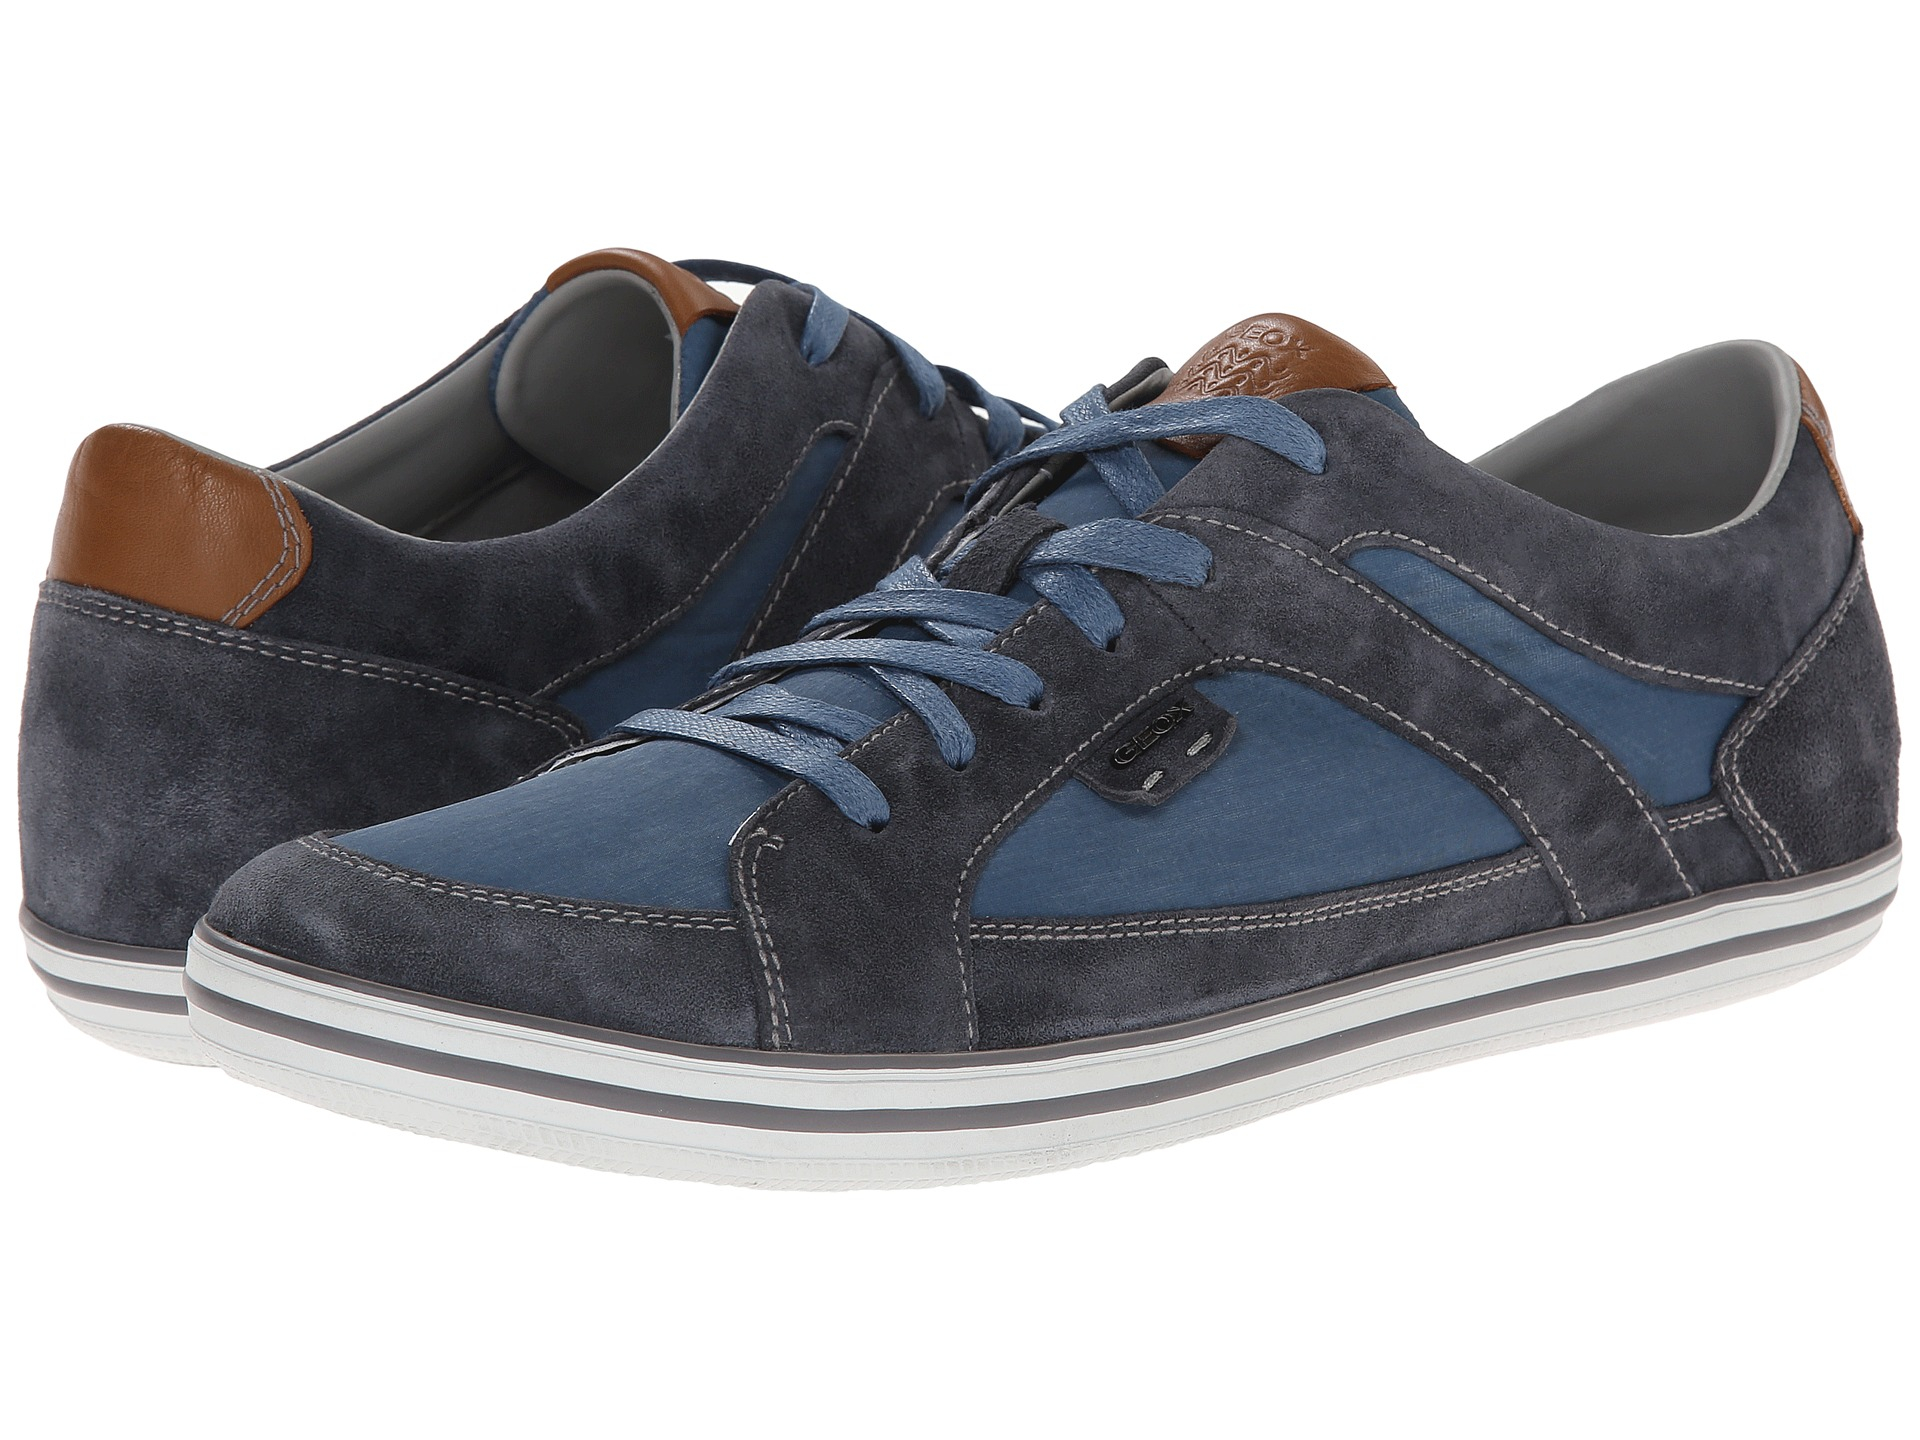 Mens U Box I Low-Top Sneakers, Navy Geox